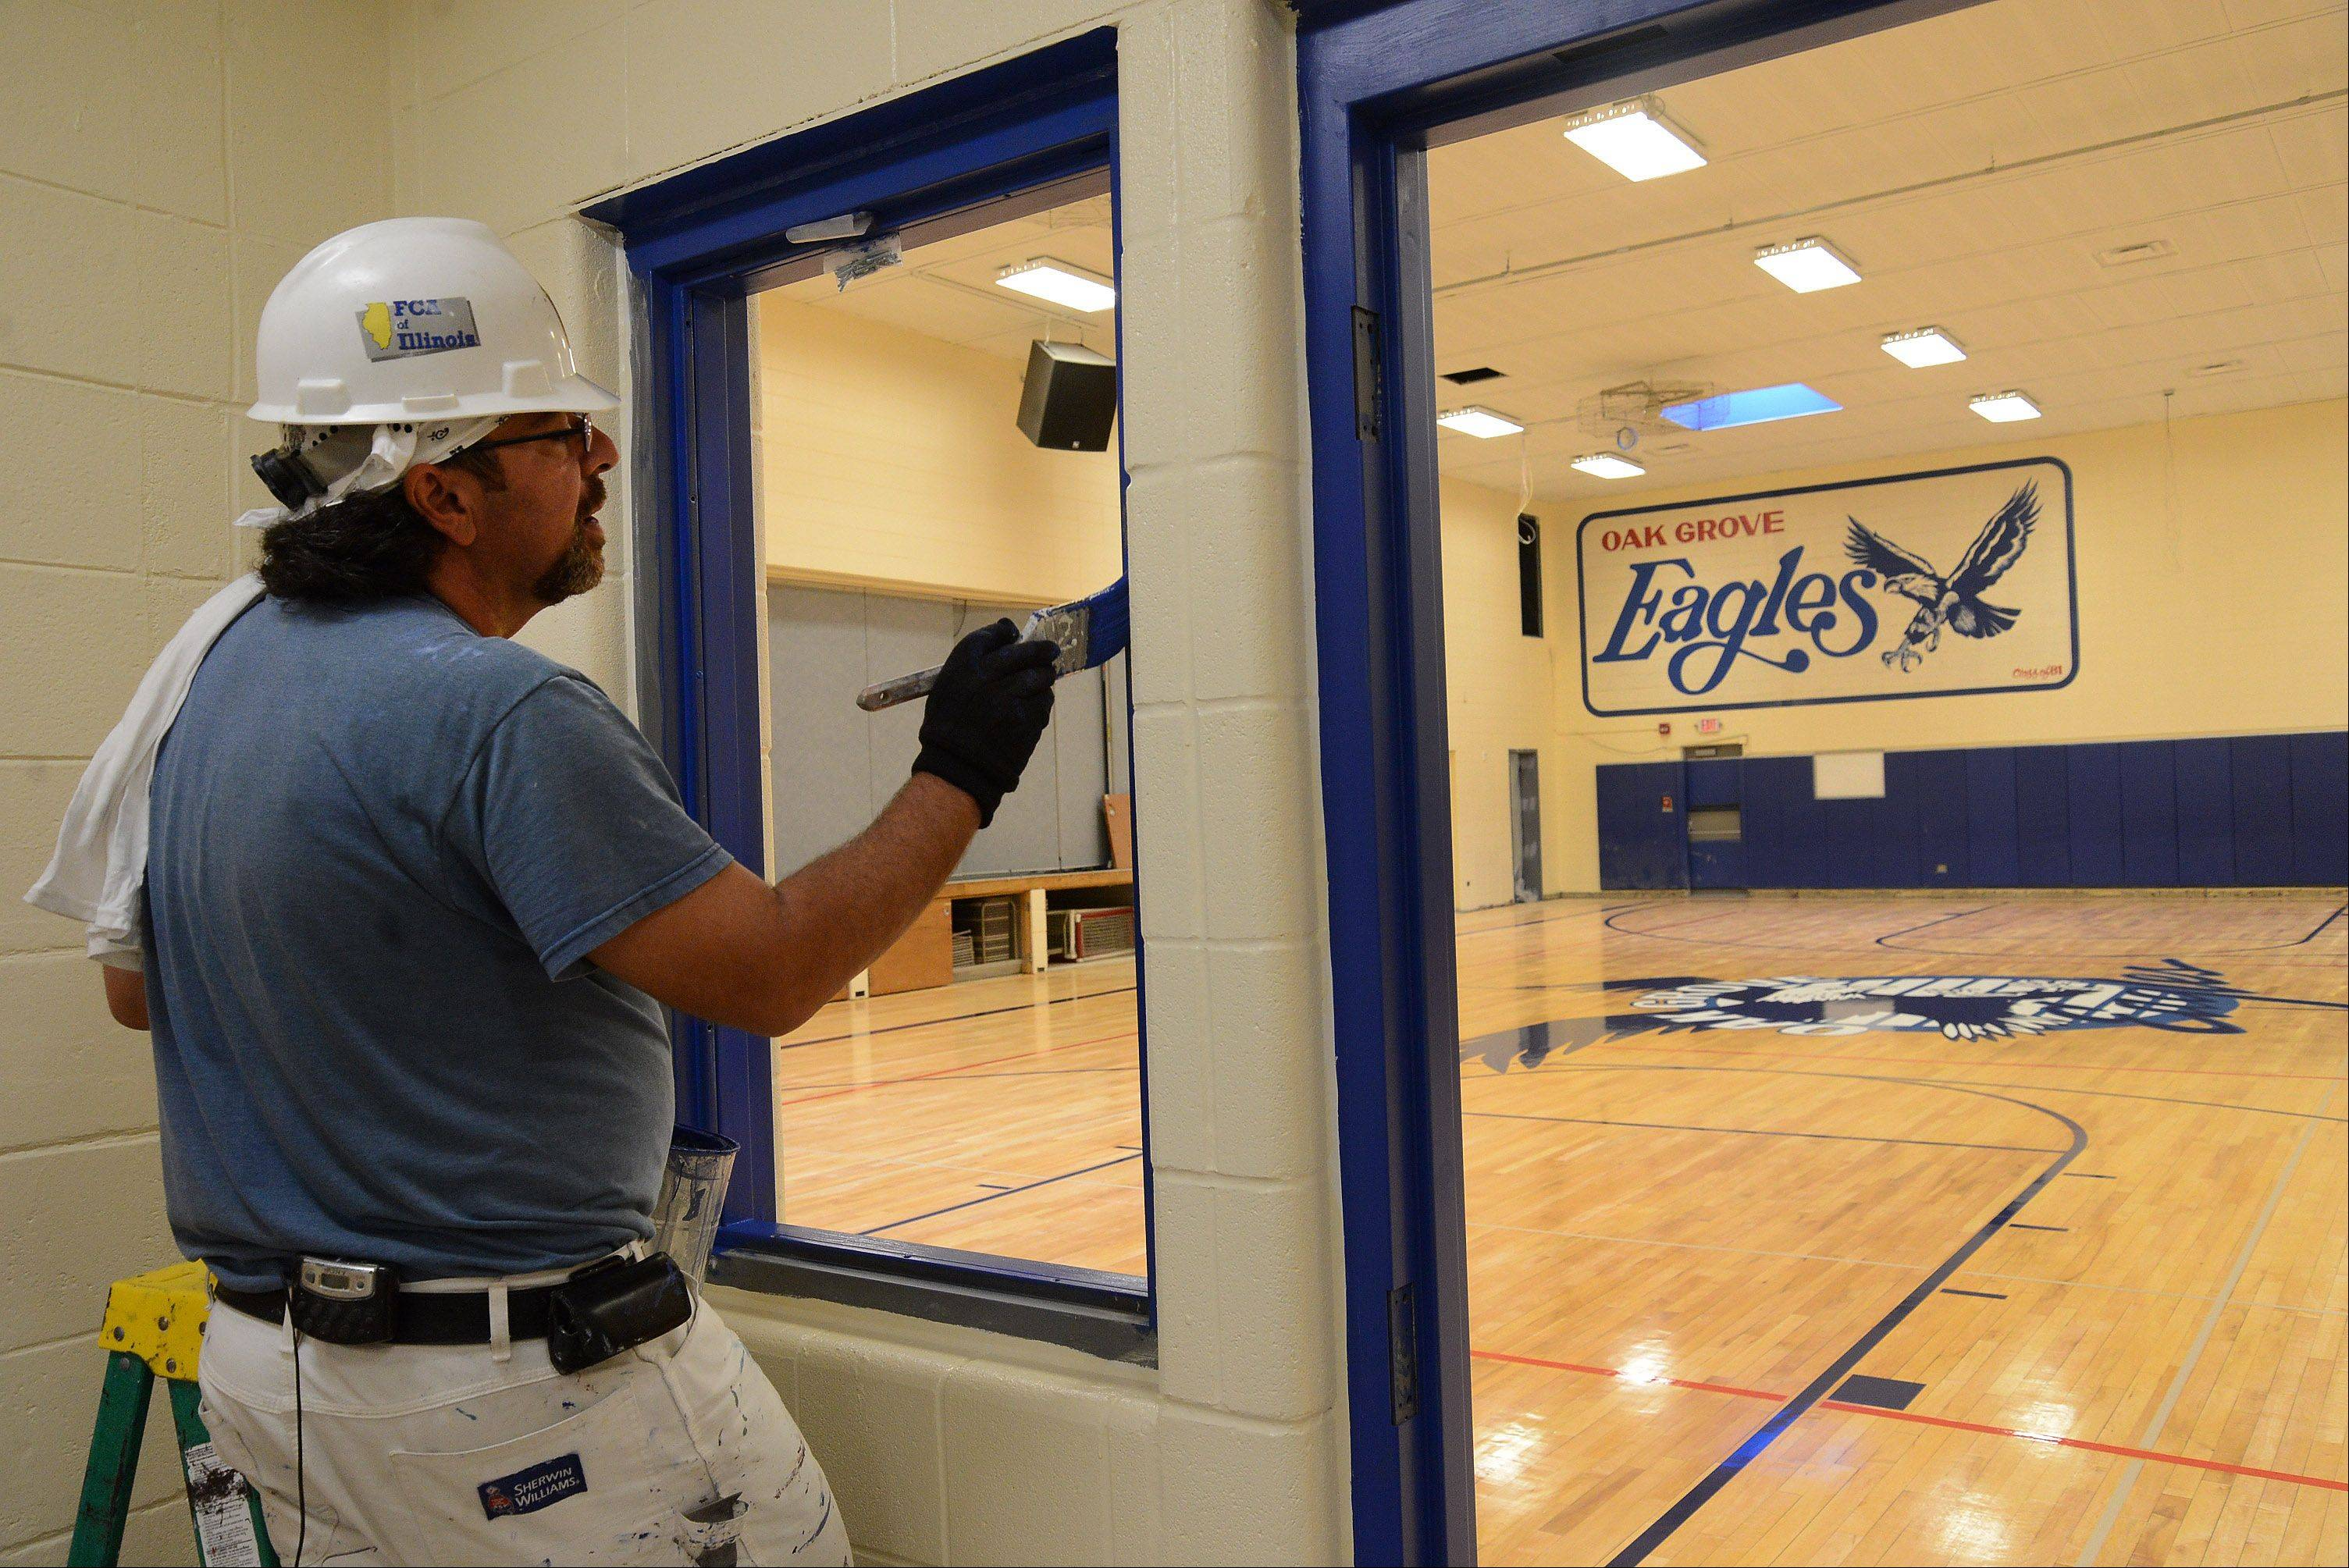 Painter Vince Gravina puts the finishing touches on the junior high gym, as Oak Grove Elementary District 68 in Green Oaks nears the end of this summer's $3.2 million renovation project.